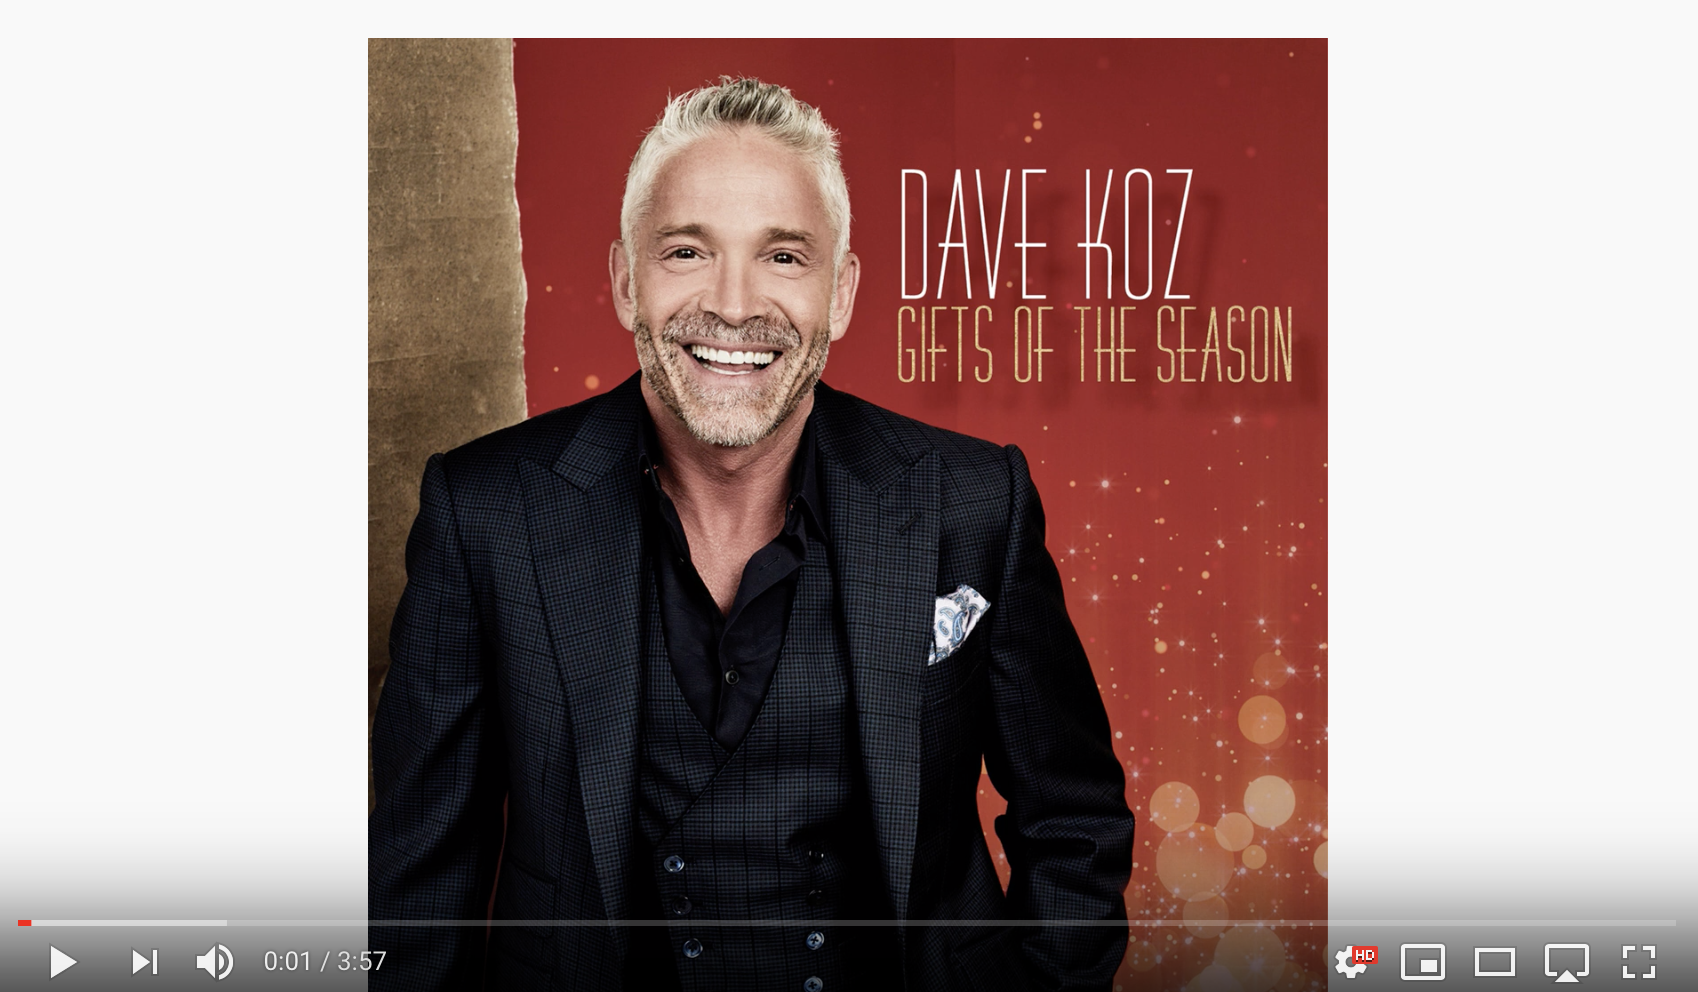 Dave Koz - It's Beginning To Look A Lot Like Christmas